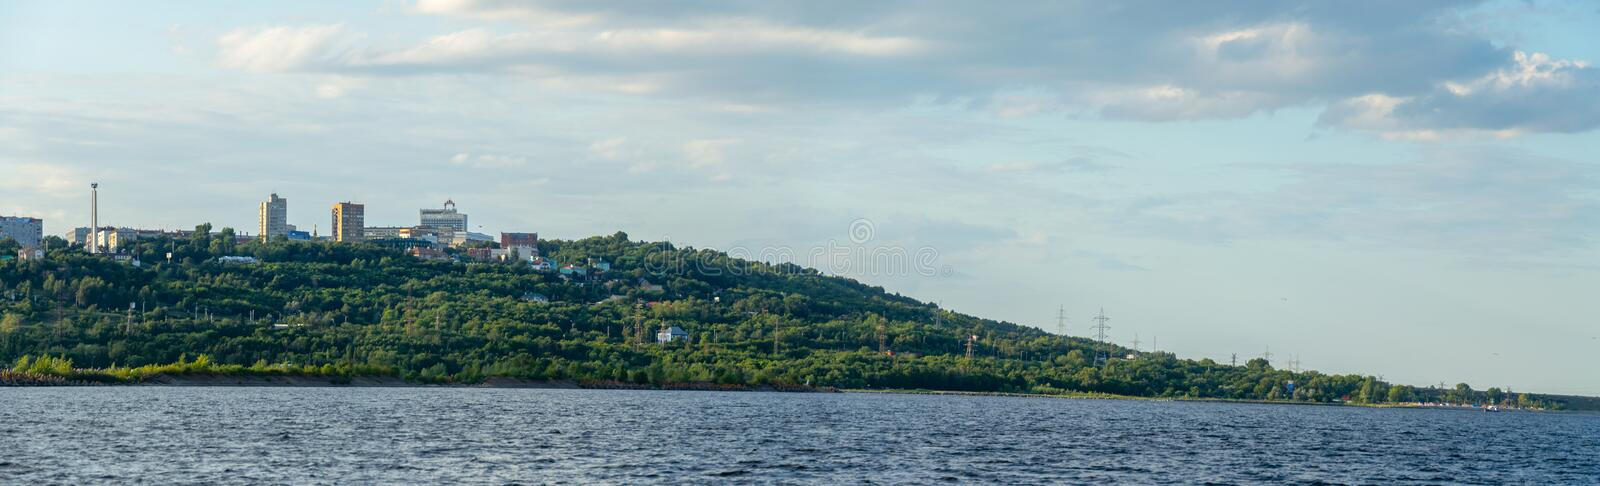 Ulyanovsk, Russia - July 20, 2019. Panorama of the city of Ulyanovsk from the Volga river, Russia royalty free stock images